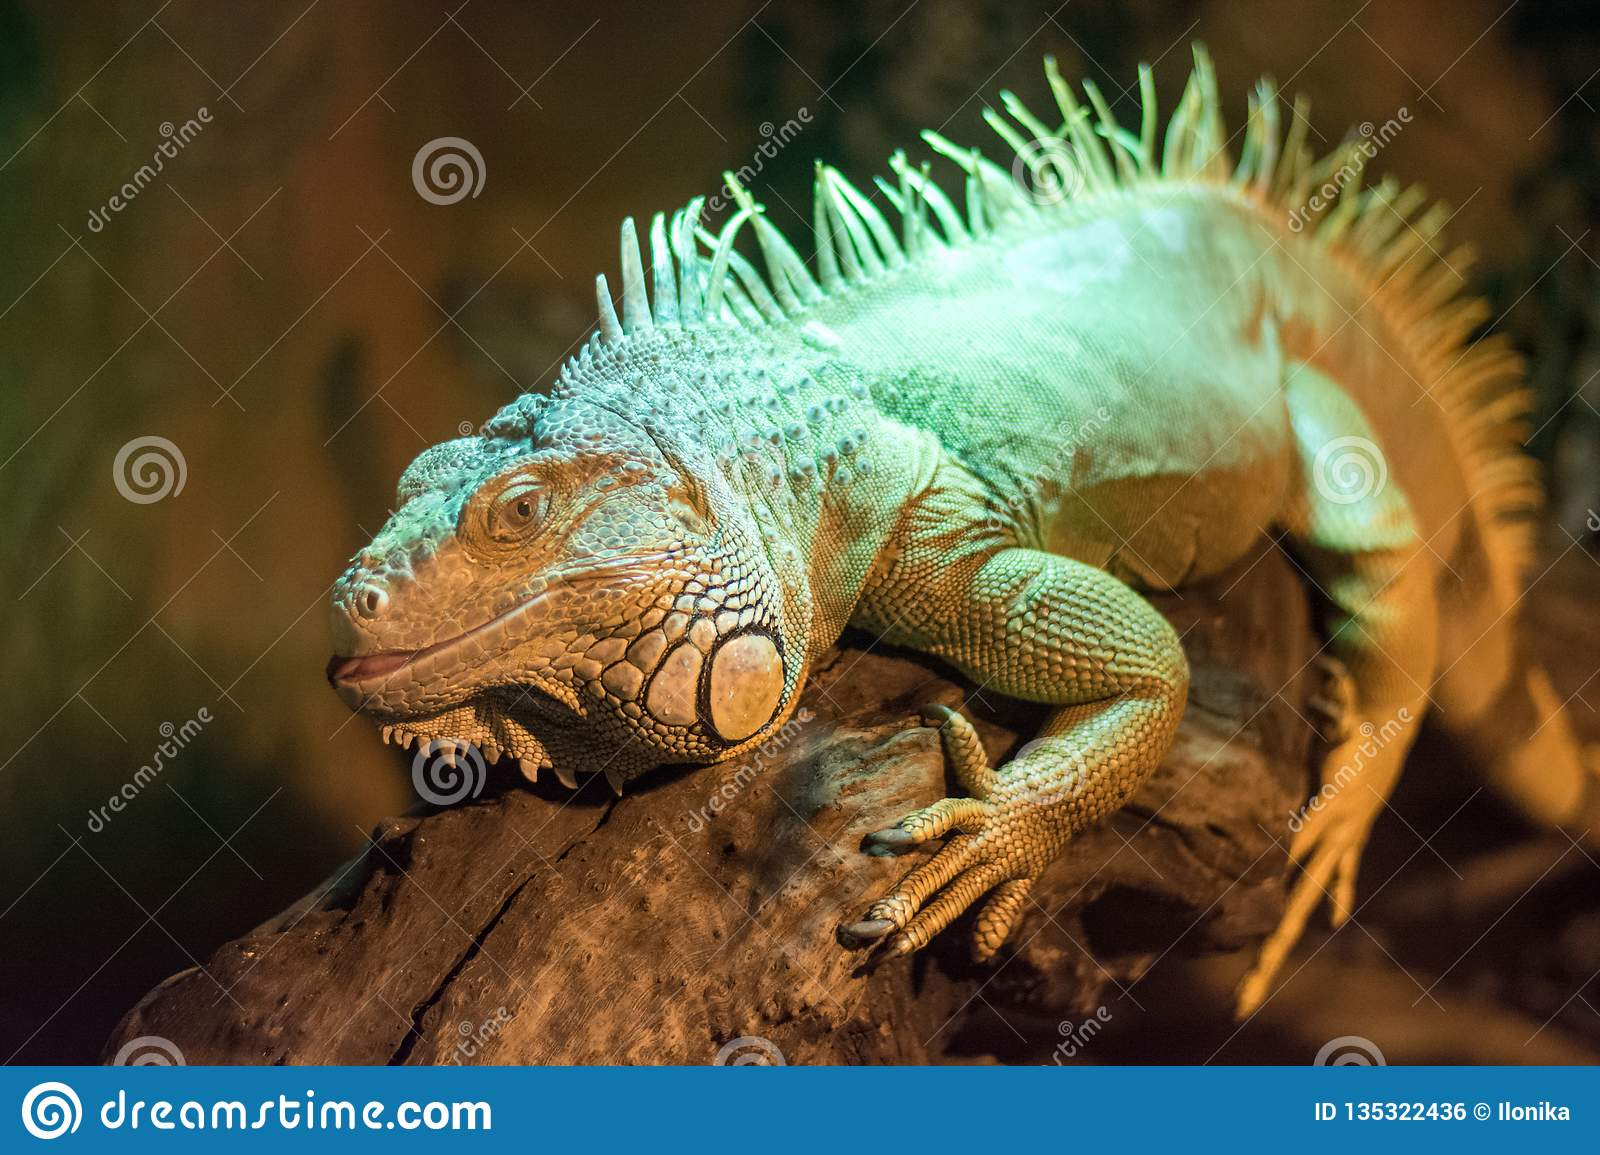 Big lizard sits on a branch